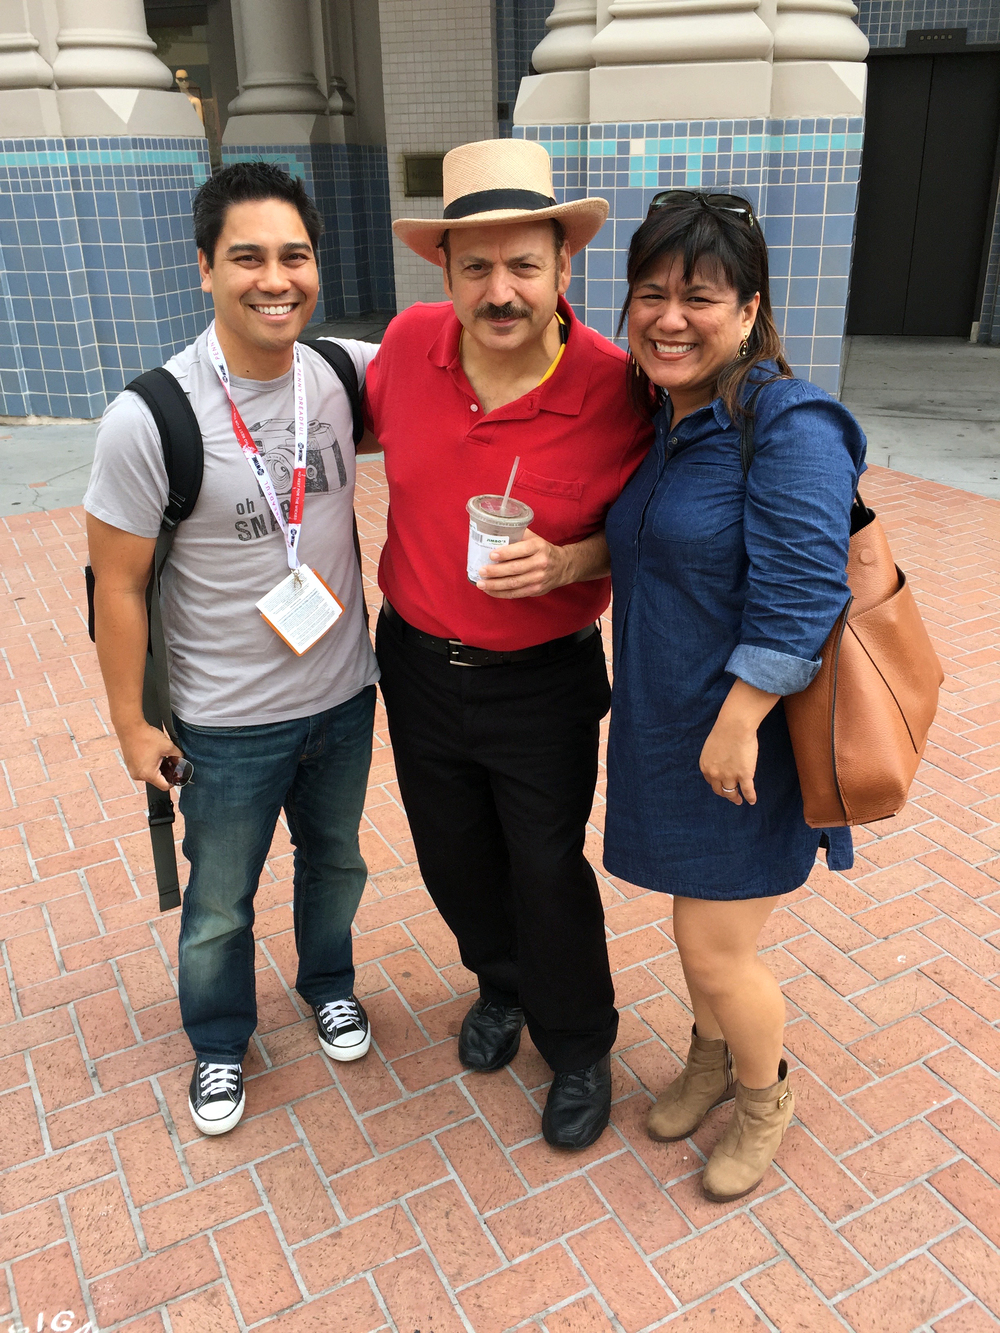 8:50am – Ran into La Bamba on our way to claim our Conan O'Brien tickets. Then we became best friends.